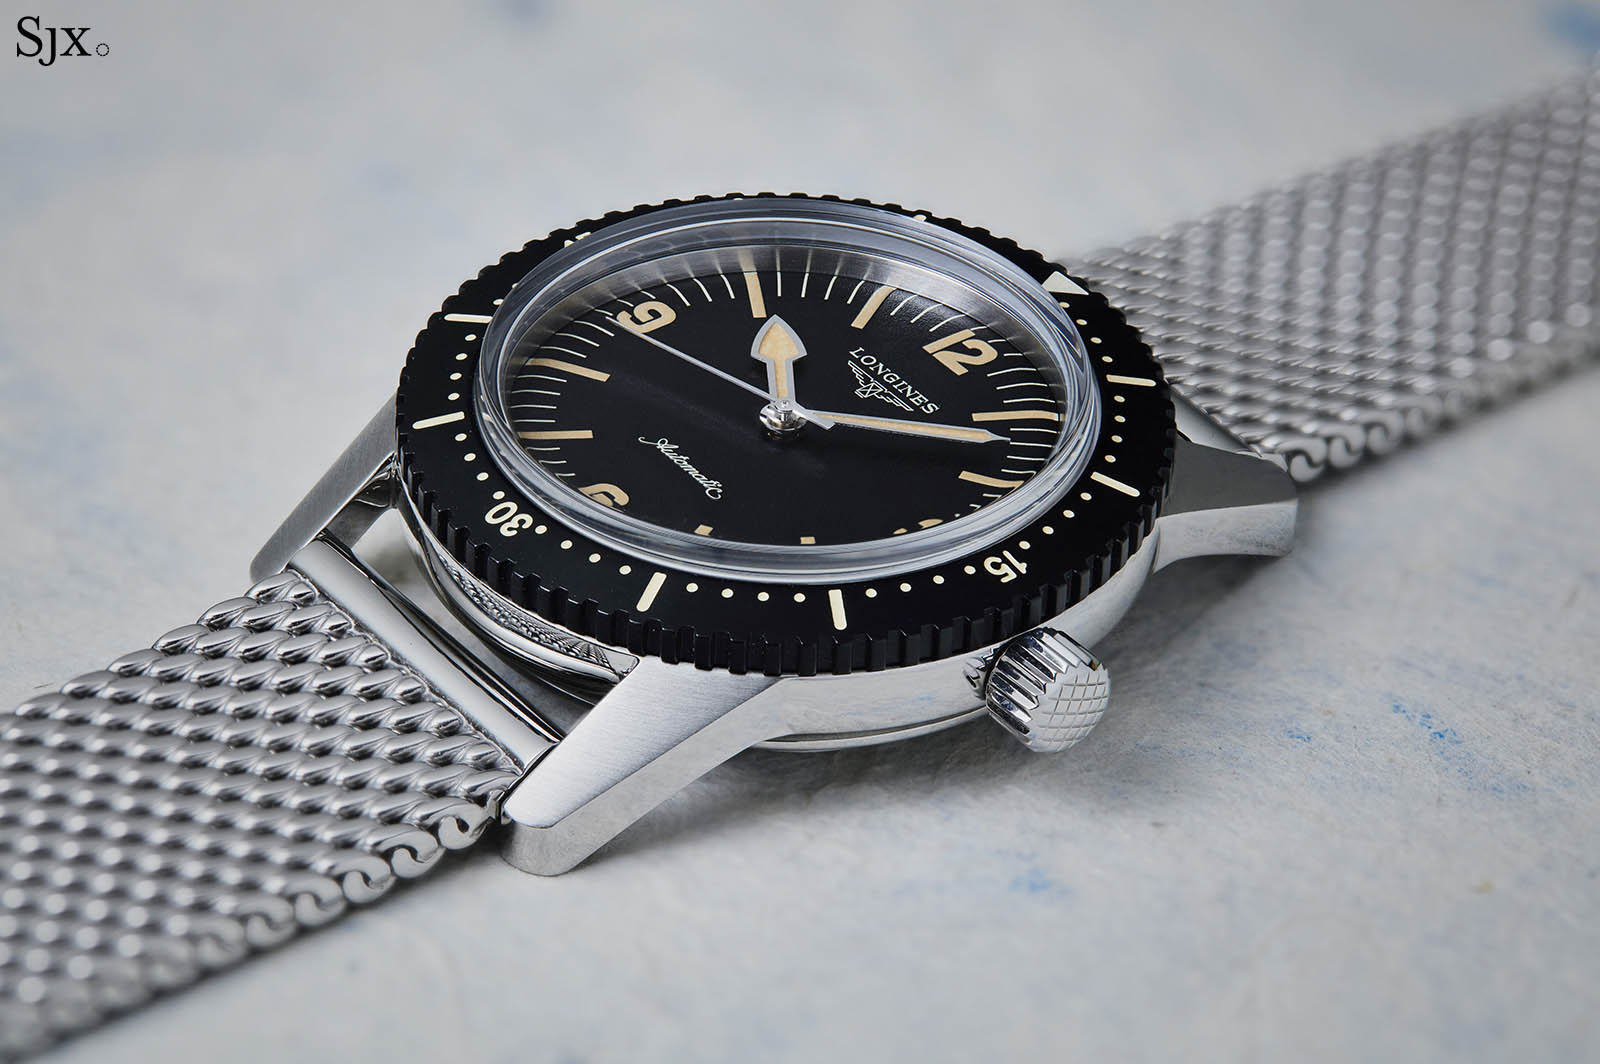 Hands On With The Longines Heritage Skin Diver Sjx Watches